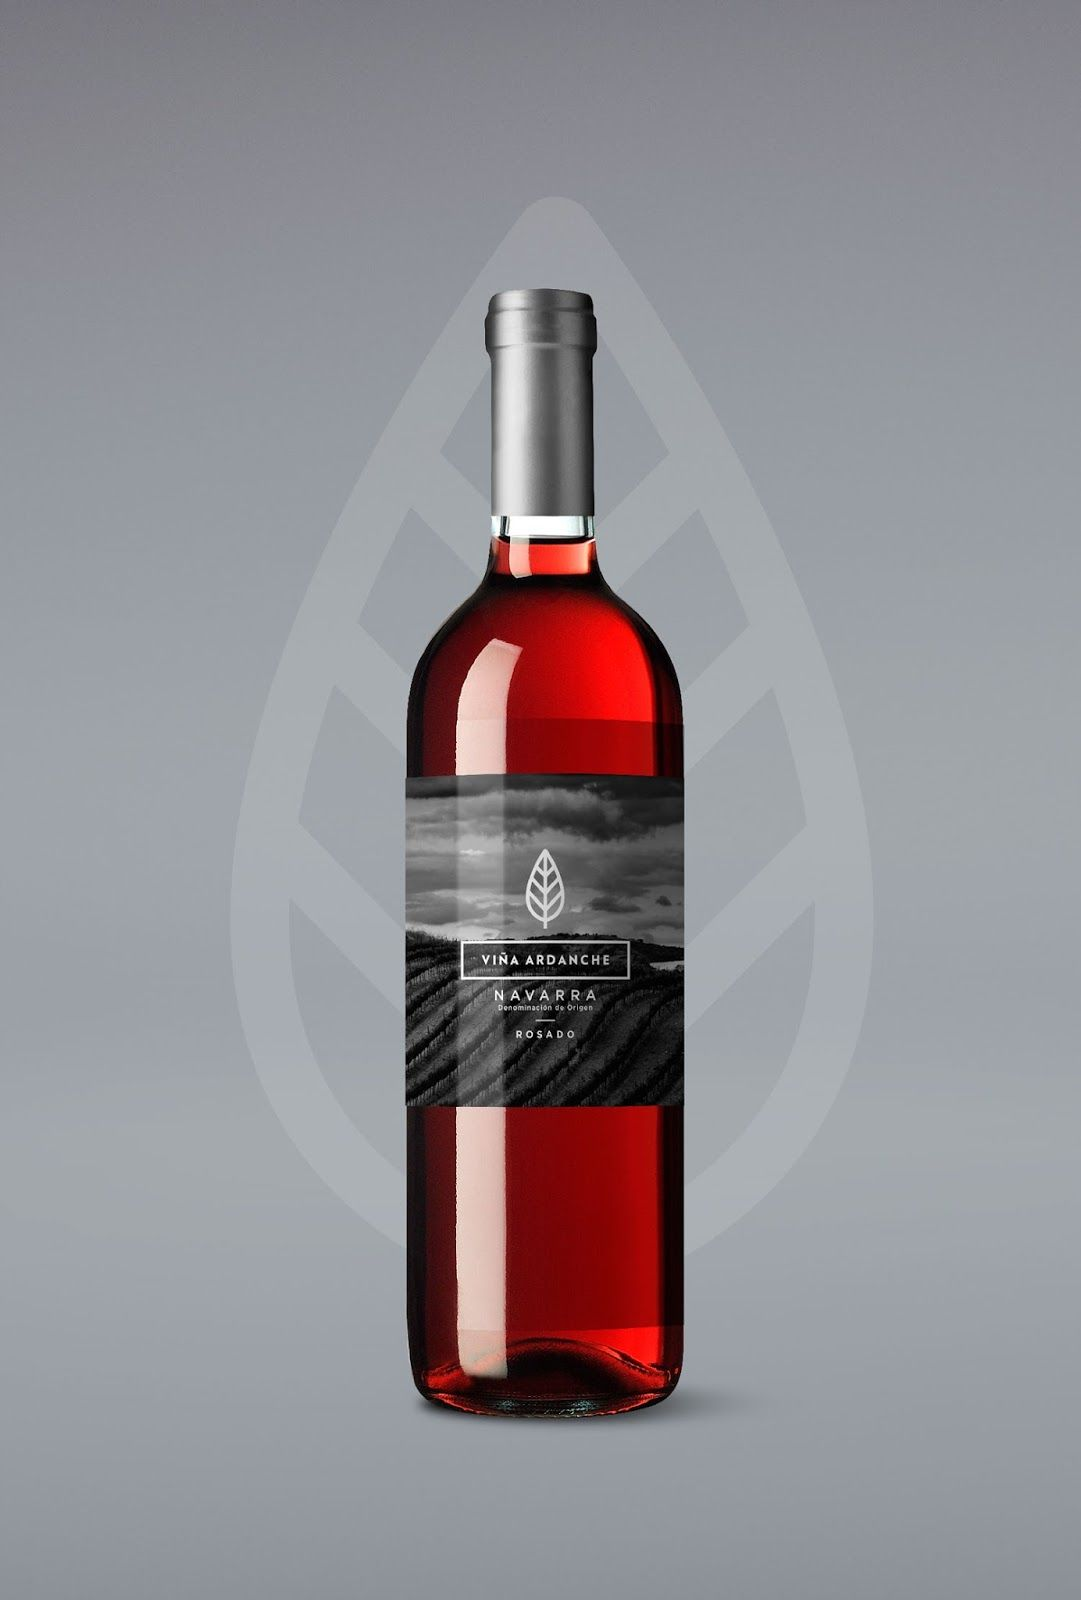 Winery For Dia Supermarkets In 2020 Wine Bottle Winery Creative Packaging Design